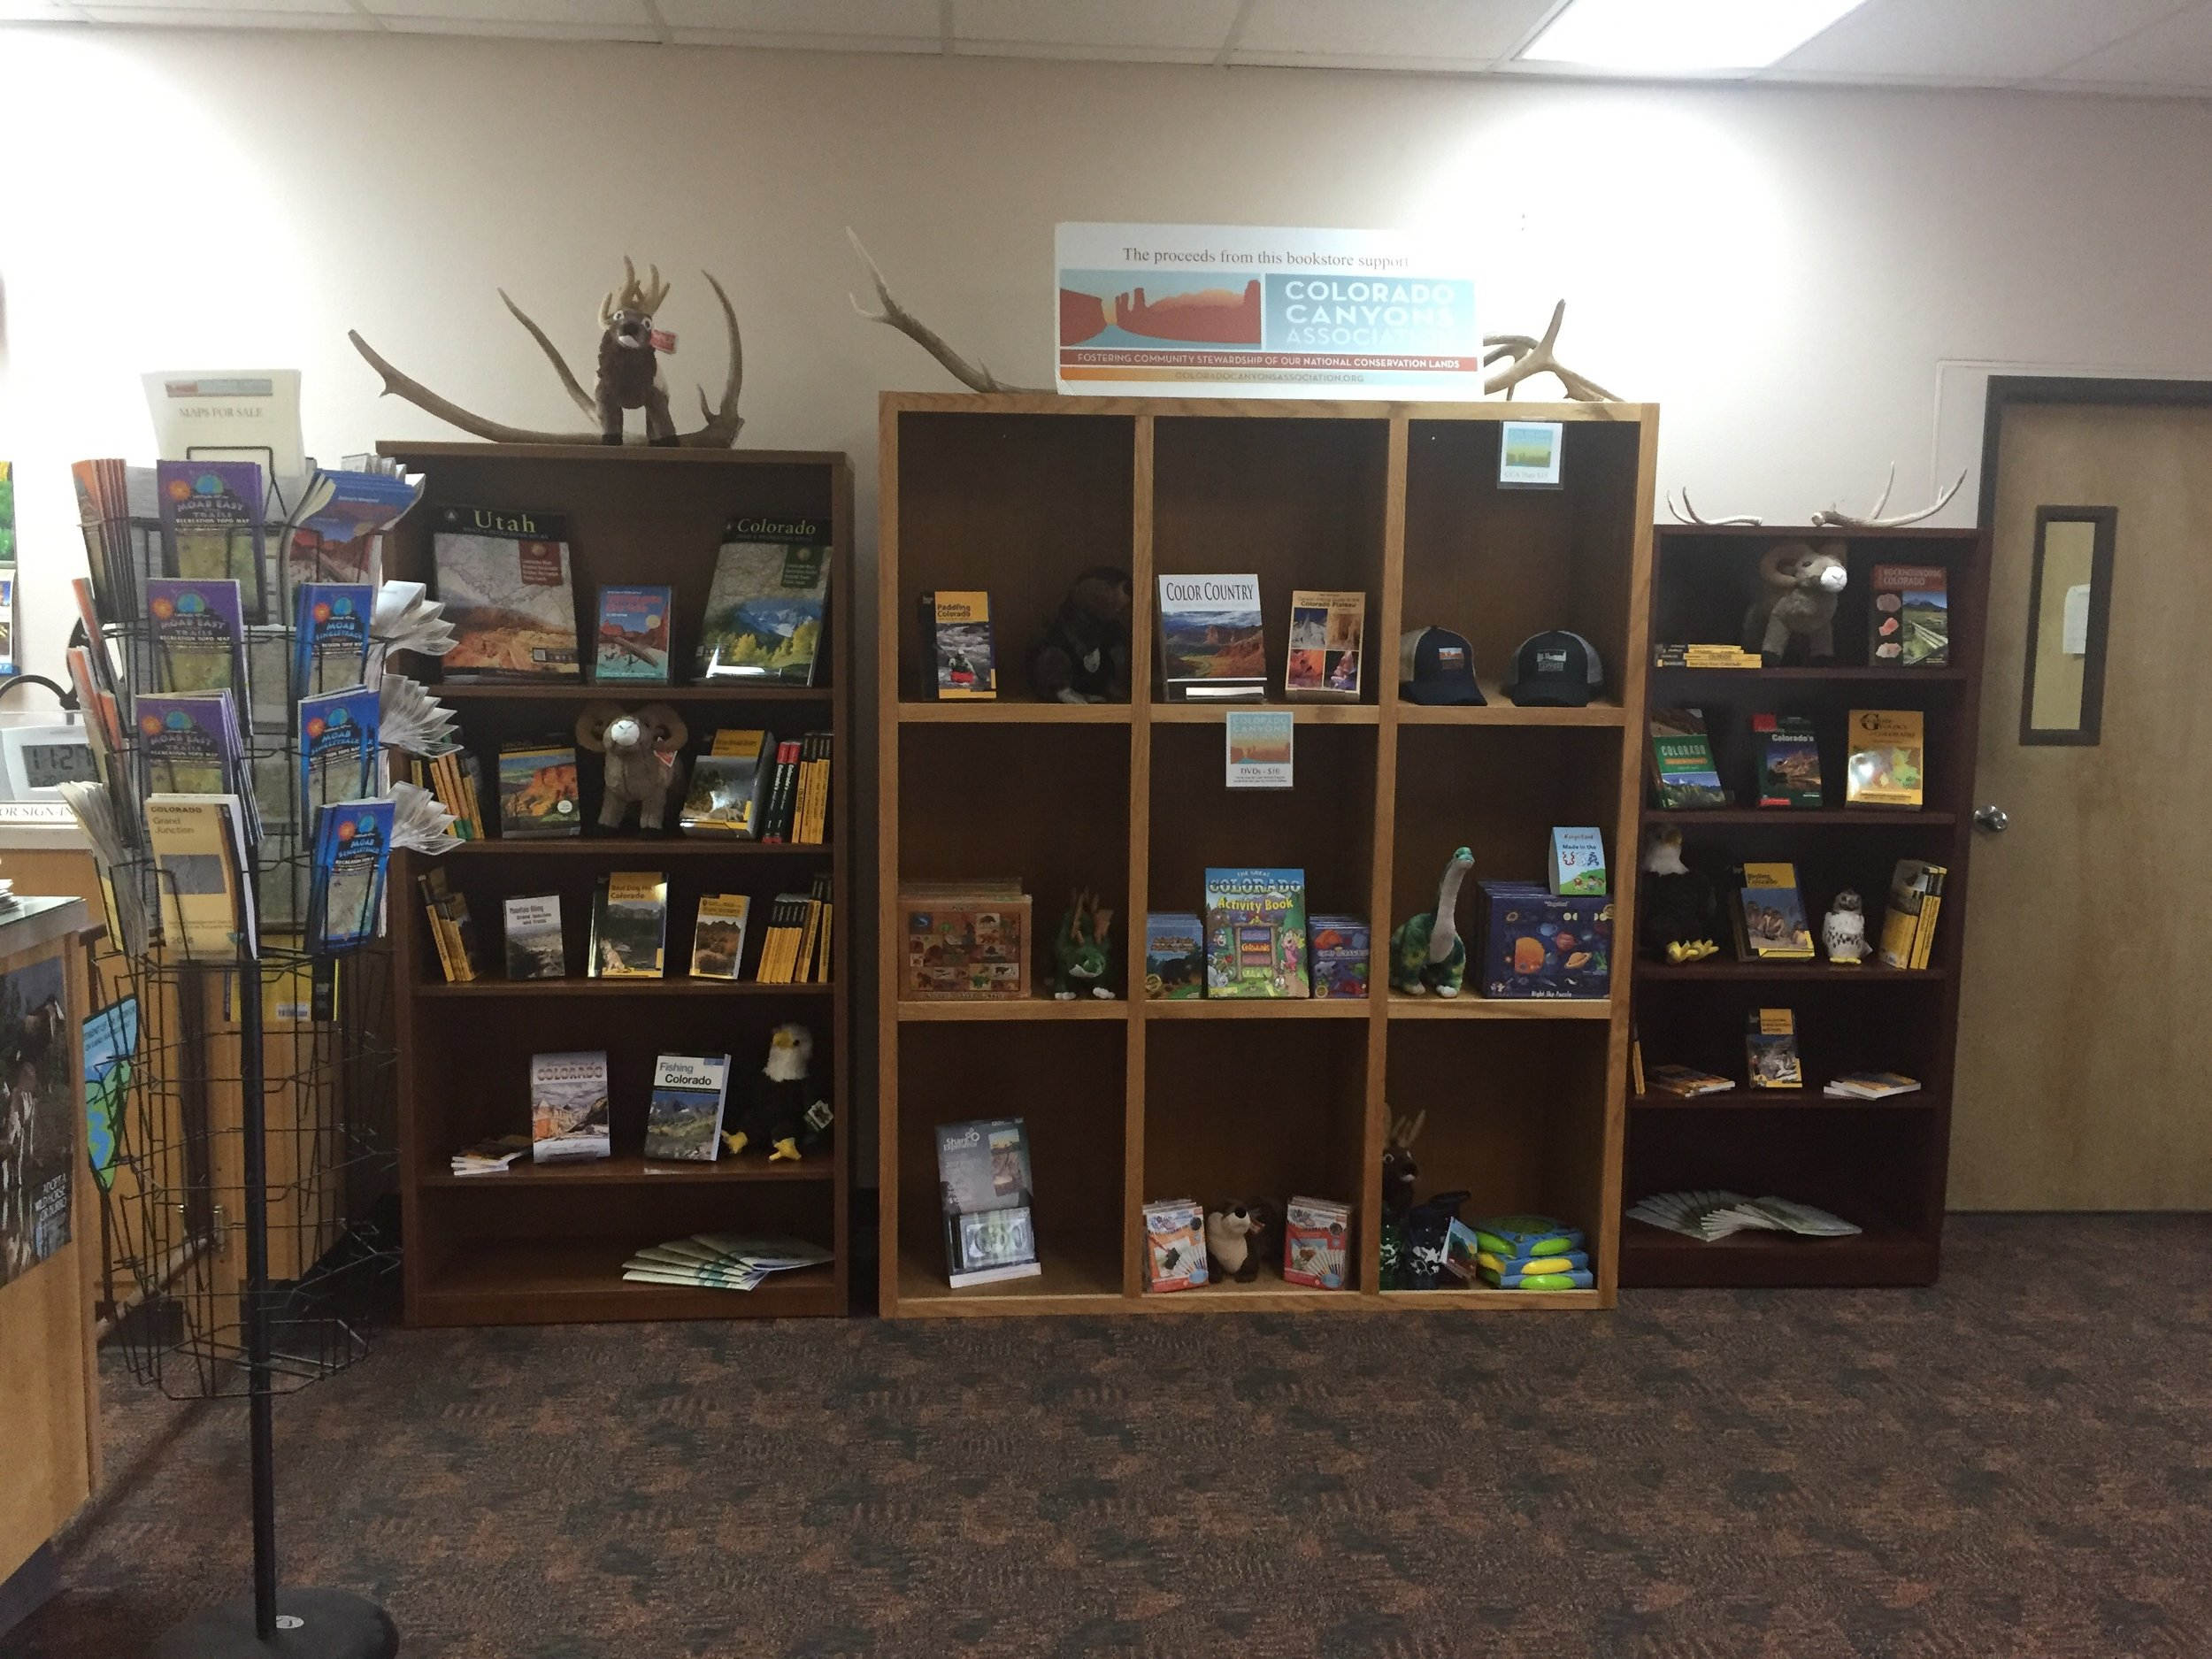 Are you in need of a new map or guidebook? What about a cute and fluffy stuffed animal? We have these and so much more at our new and improved bookstore!